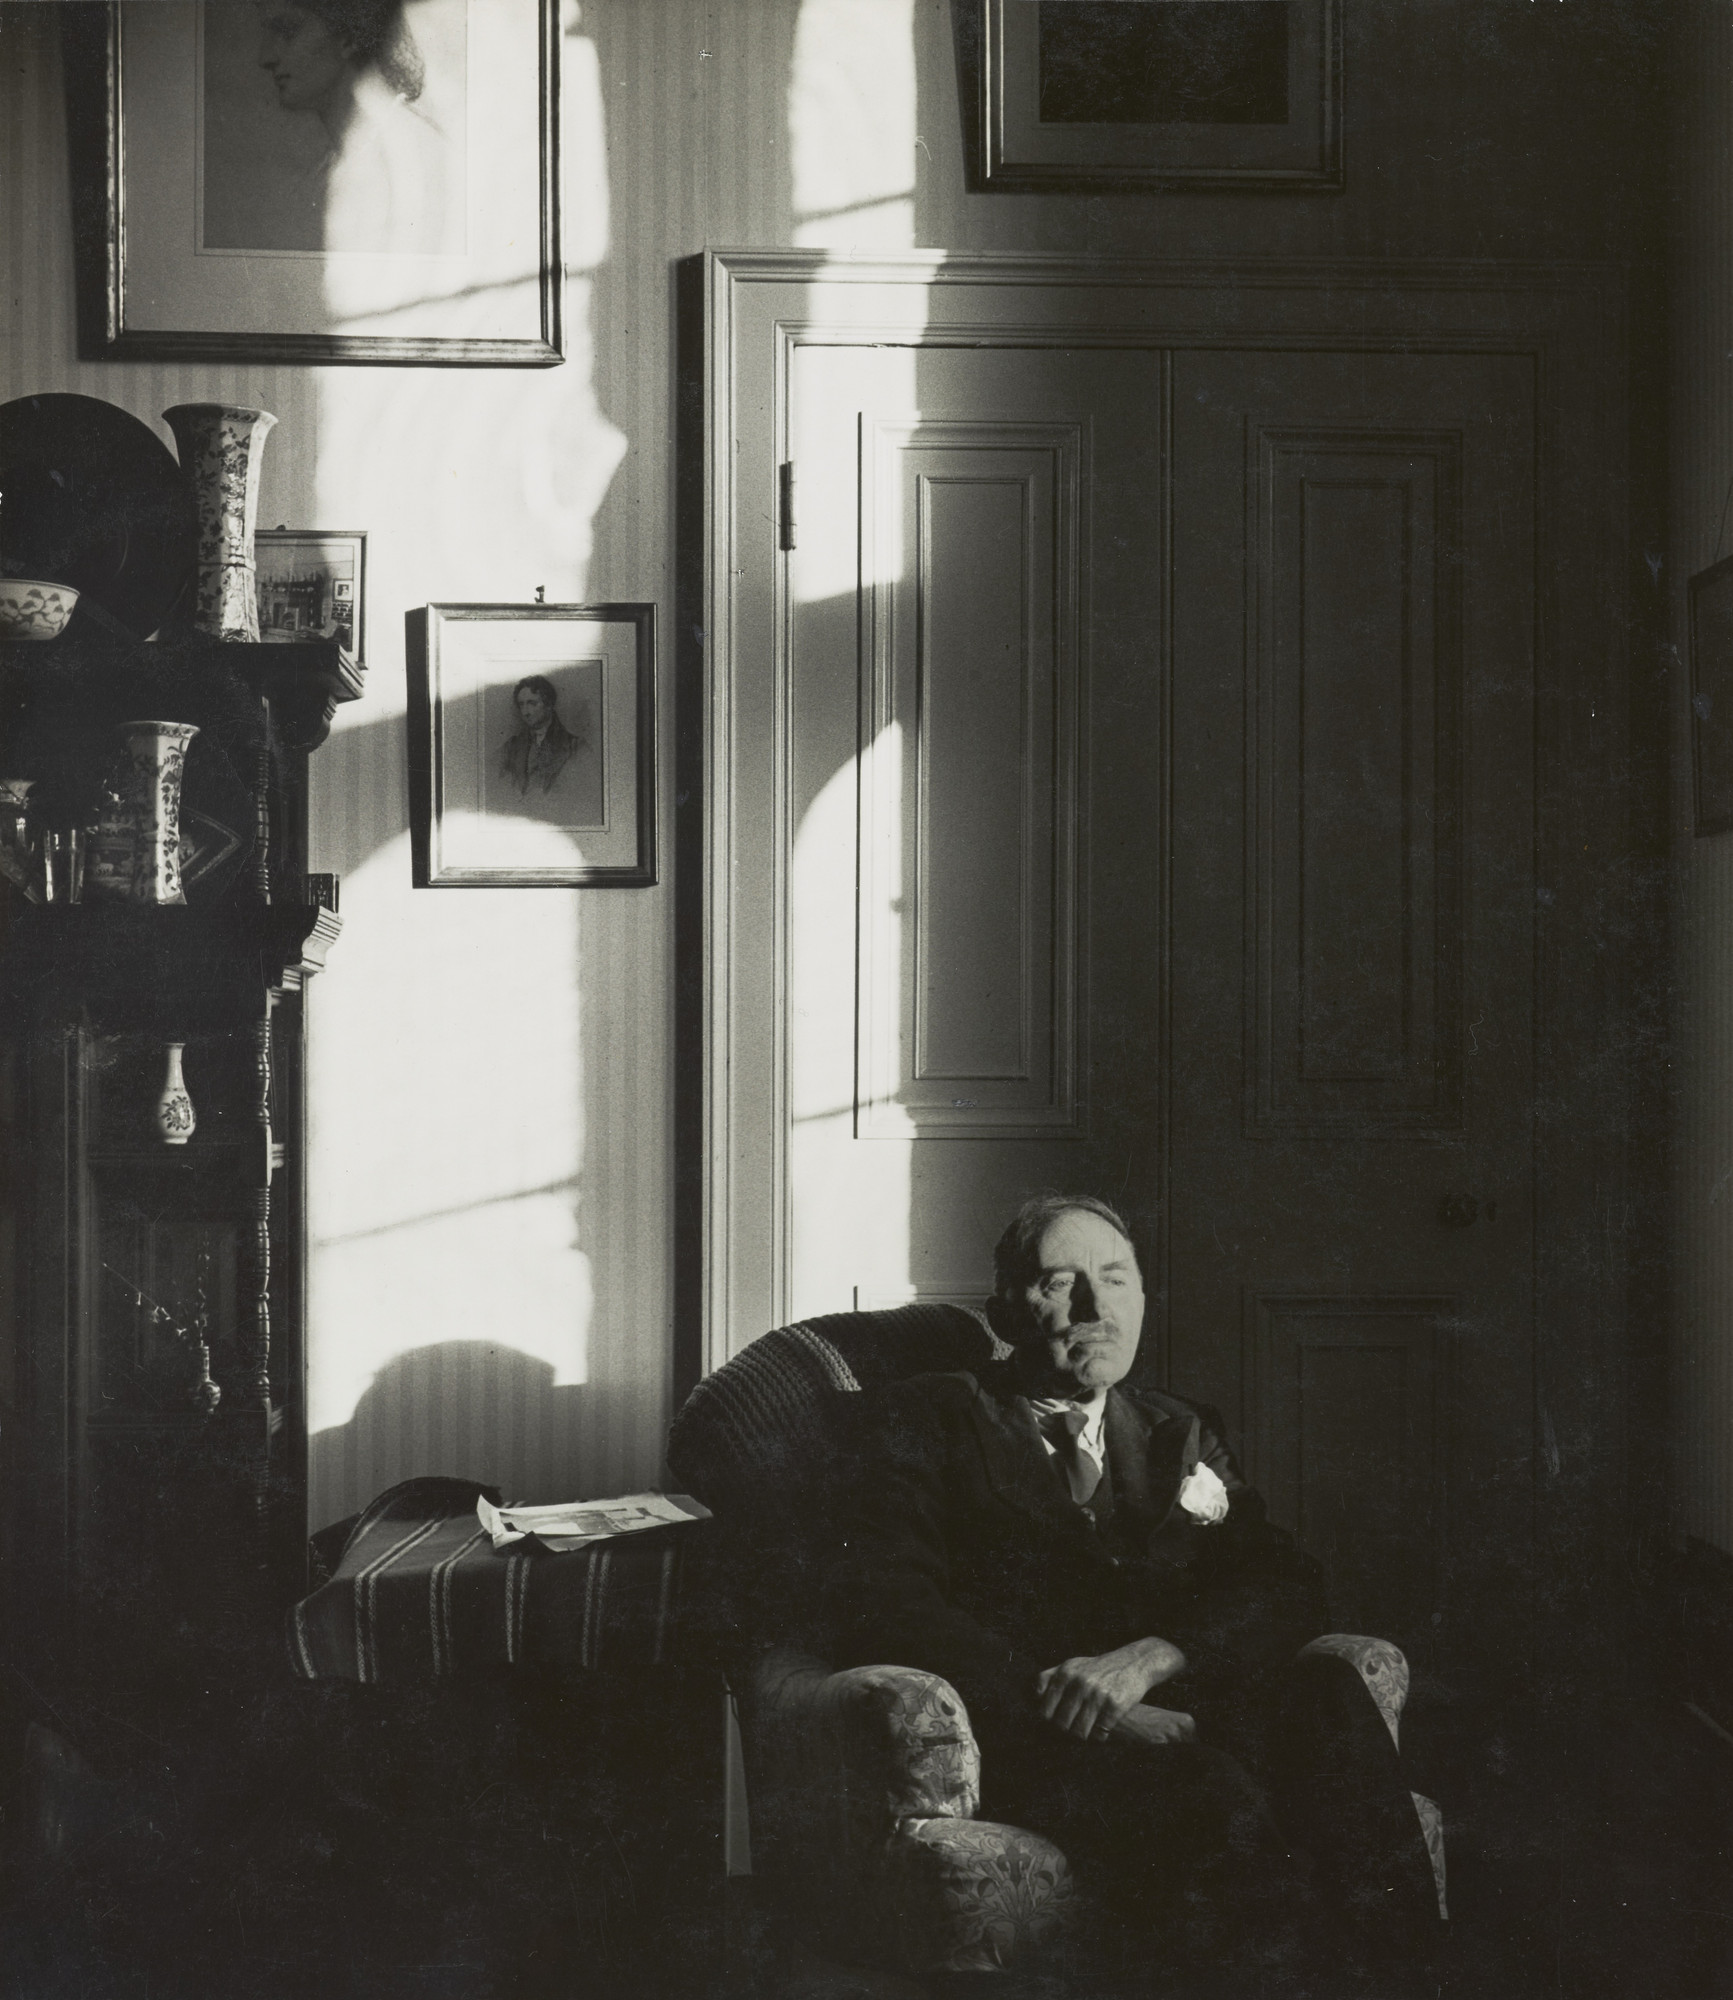 Bill Brandt. E.M. Forster in His Room at King's College, Cambridge. 1947